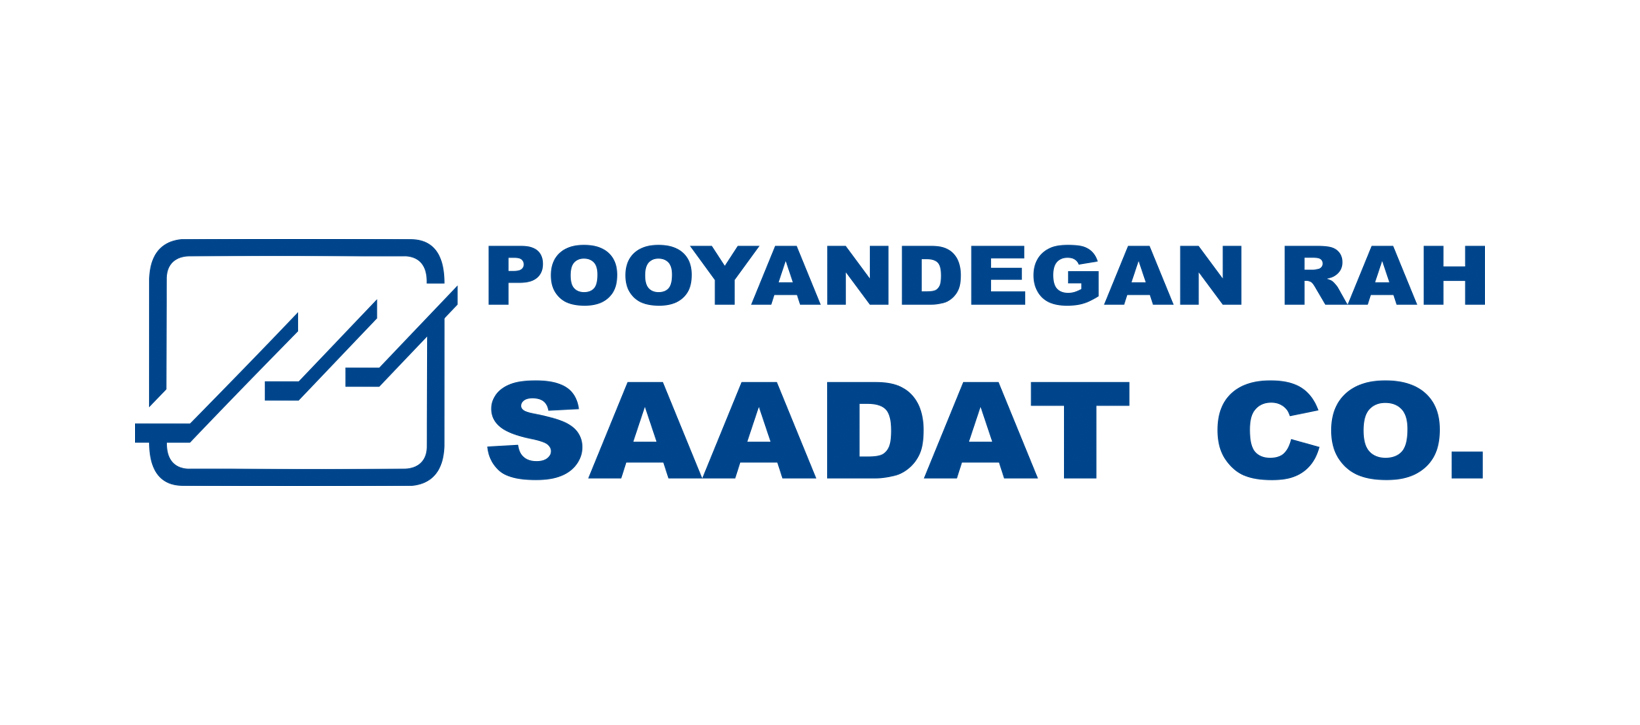 Pooyandegan rah saadat co